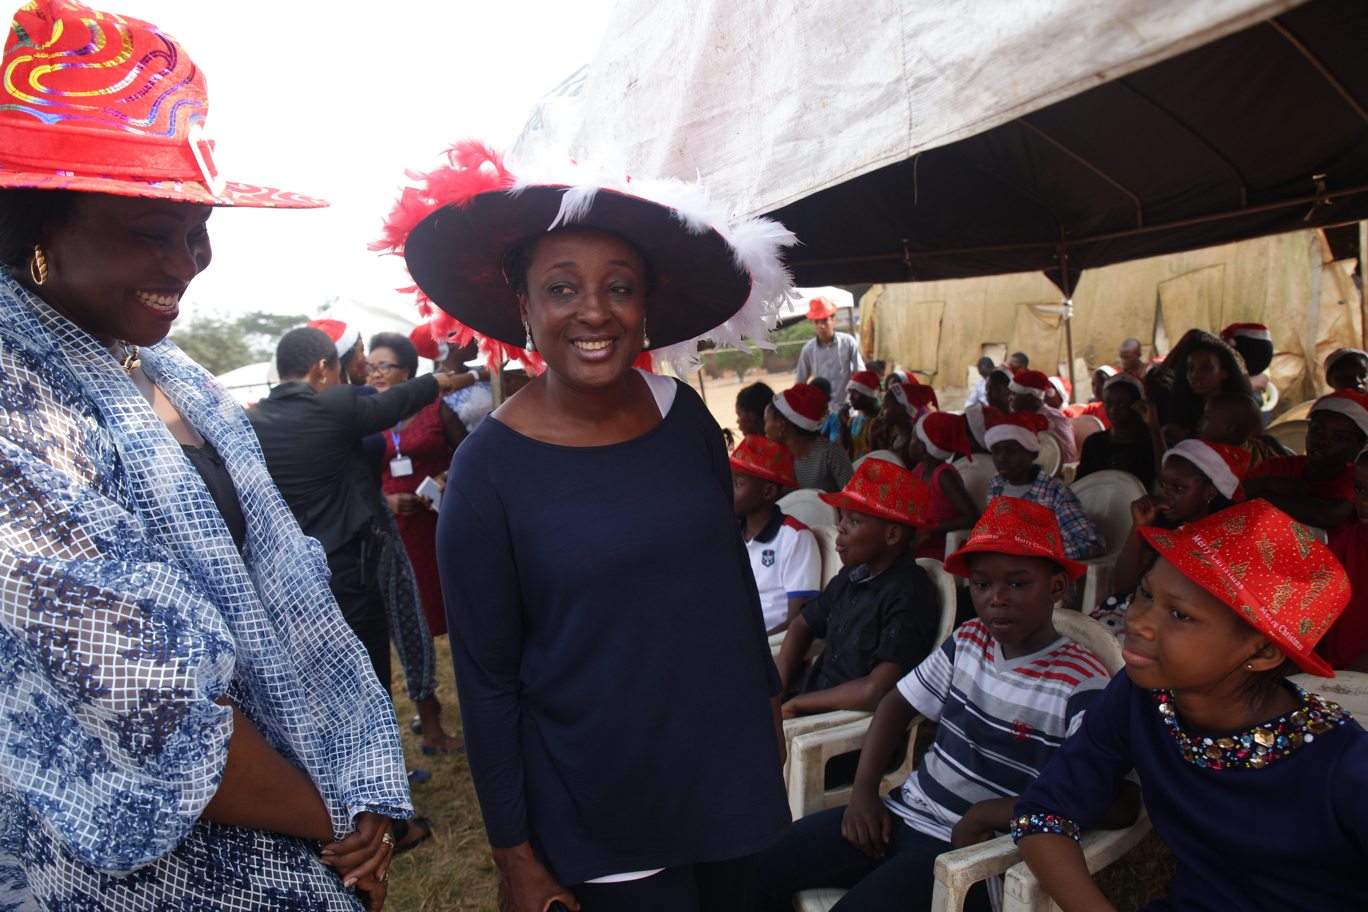 Mrs. Betsy Obaseki's spirit of kindness at Xmas